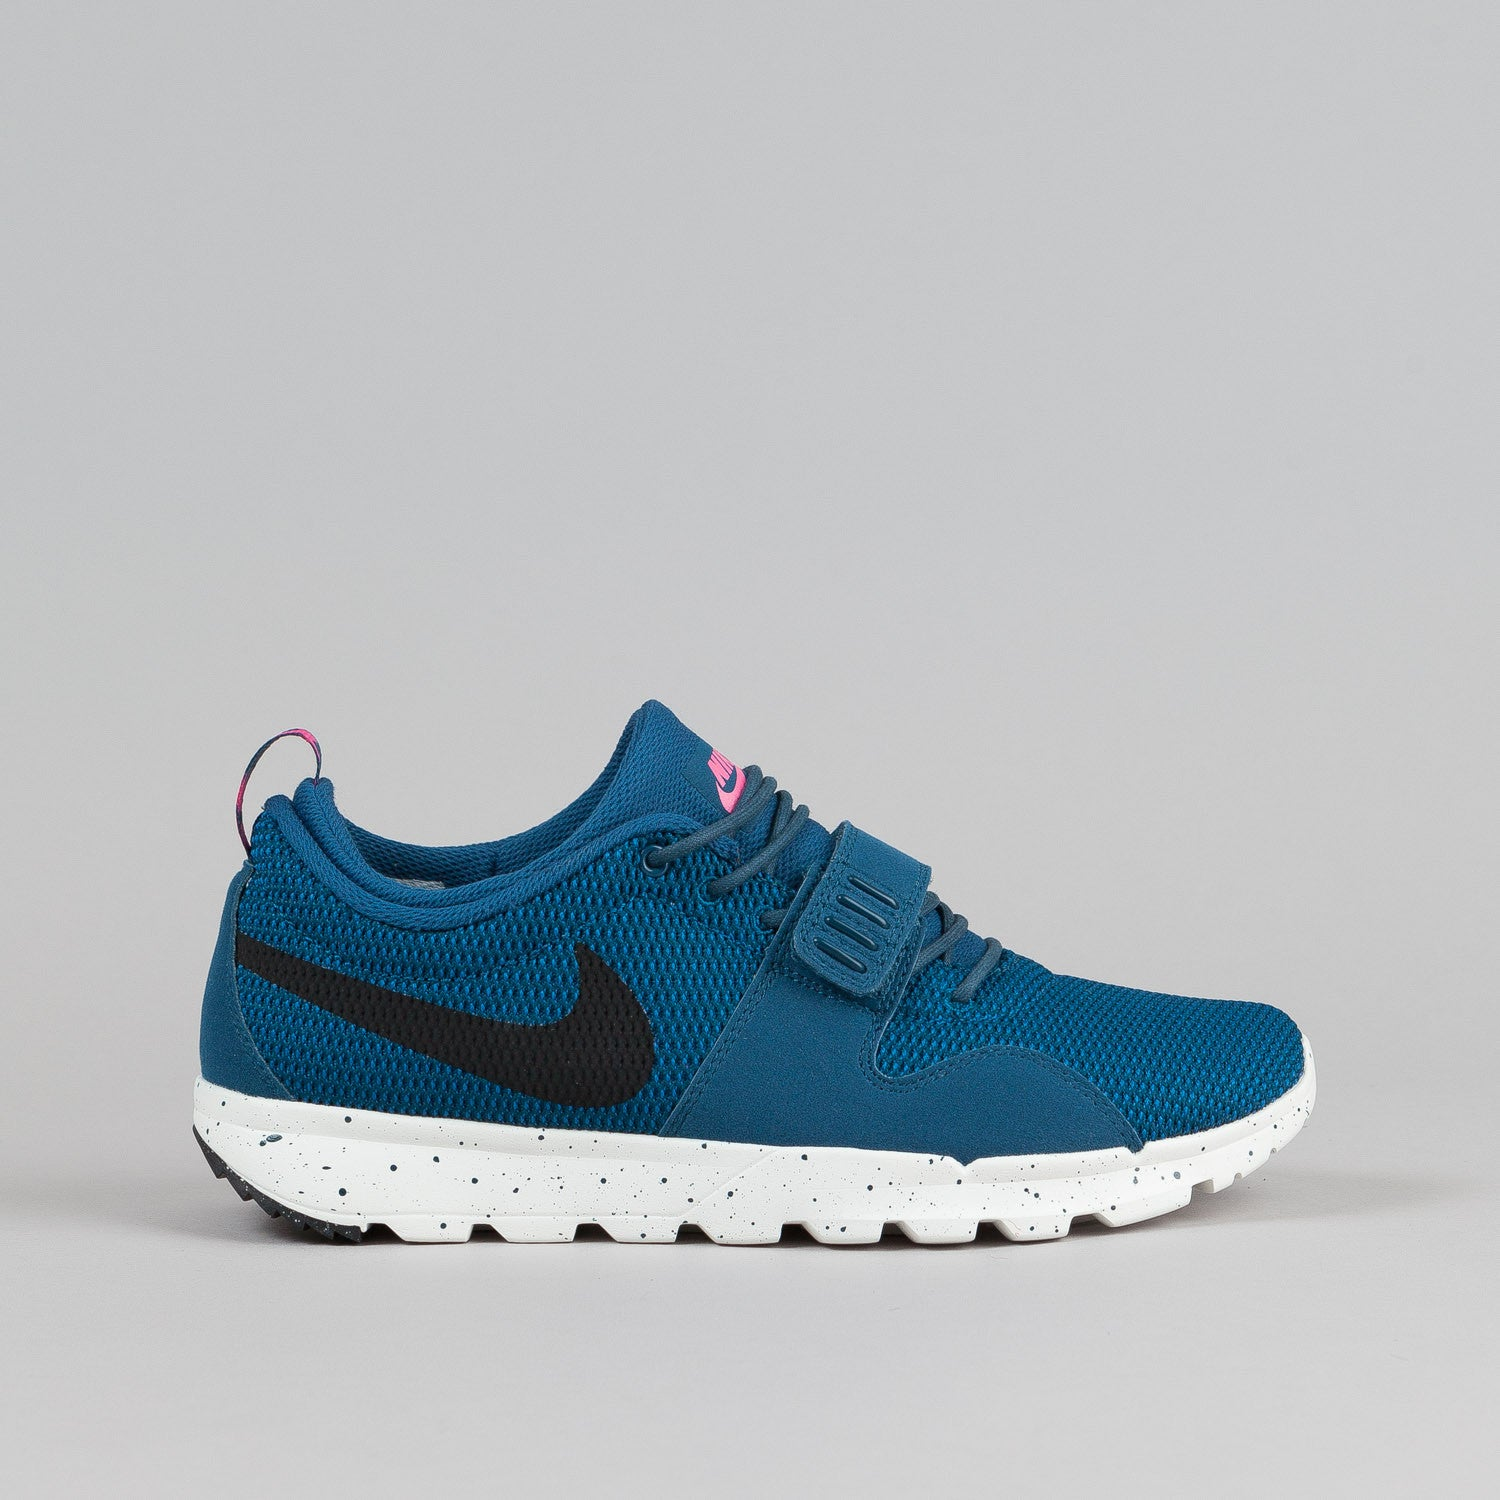 Nike SB Trainerendor Shoes Blue Force / Black